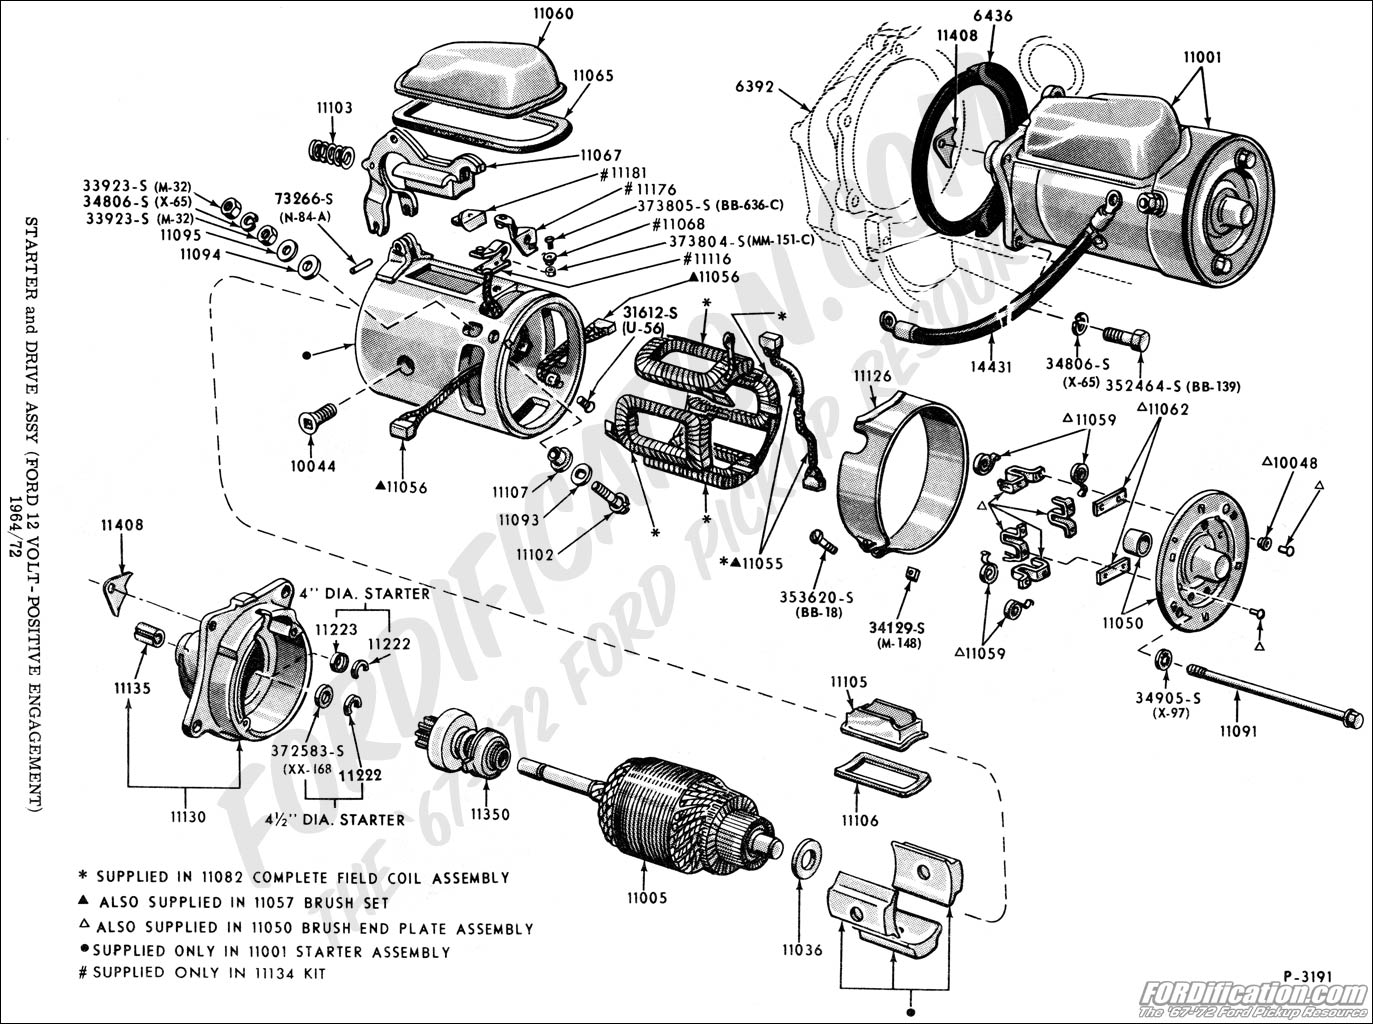 Schematics b likewise T11086618 1996 ford f 150 fuel pump relay location moreover 30jvo Hi I 1999 Dodge Durango Signal Lights Dont furthermore Daewoo Espero Audio Stereo Wiring System further 84 Ford F150 Wiring Diagram. on 2000 ford expedition starter removal